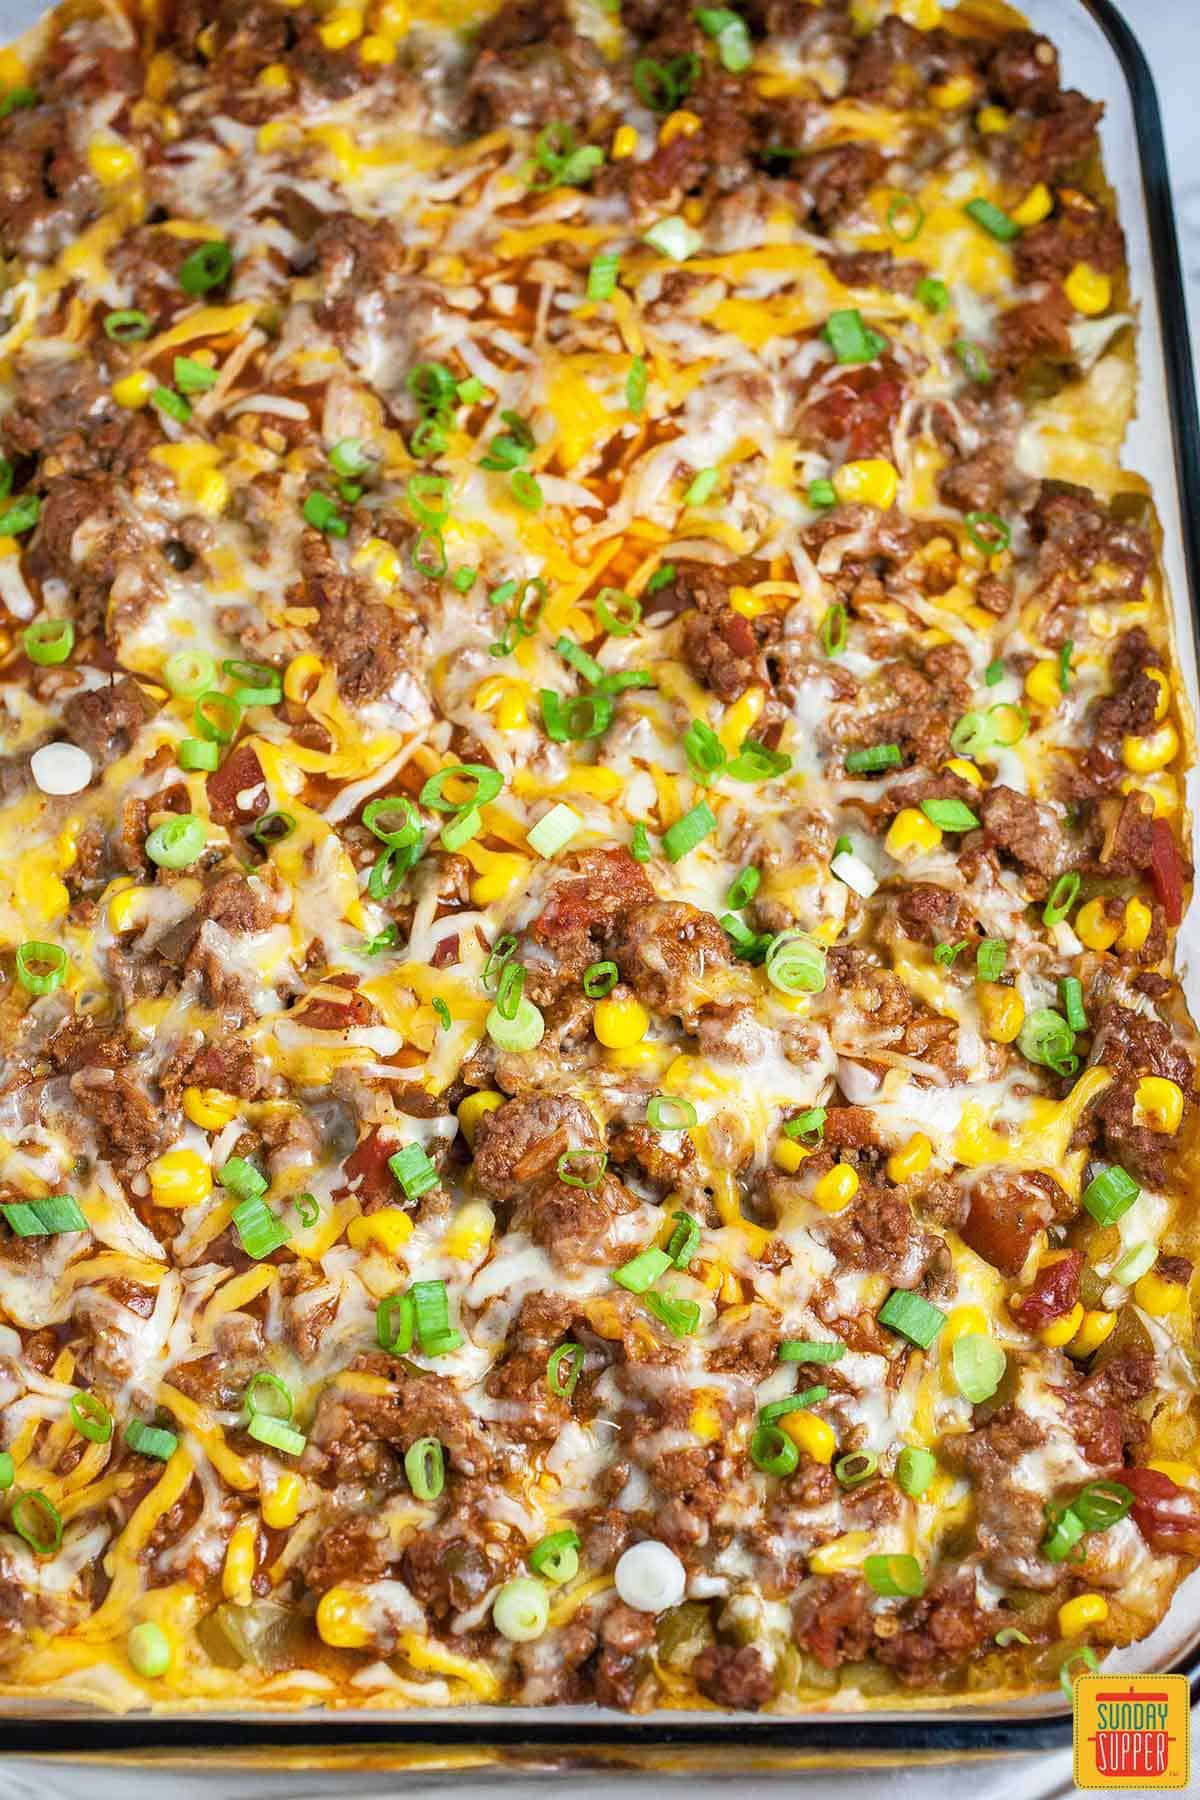 Mexican lasagna with corn tortillas in the casserole dish after baking